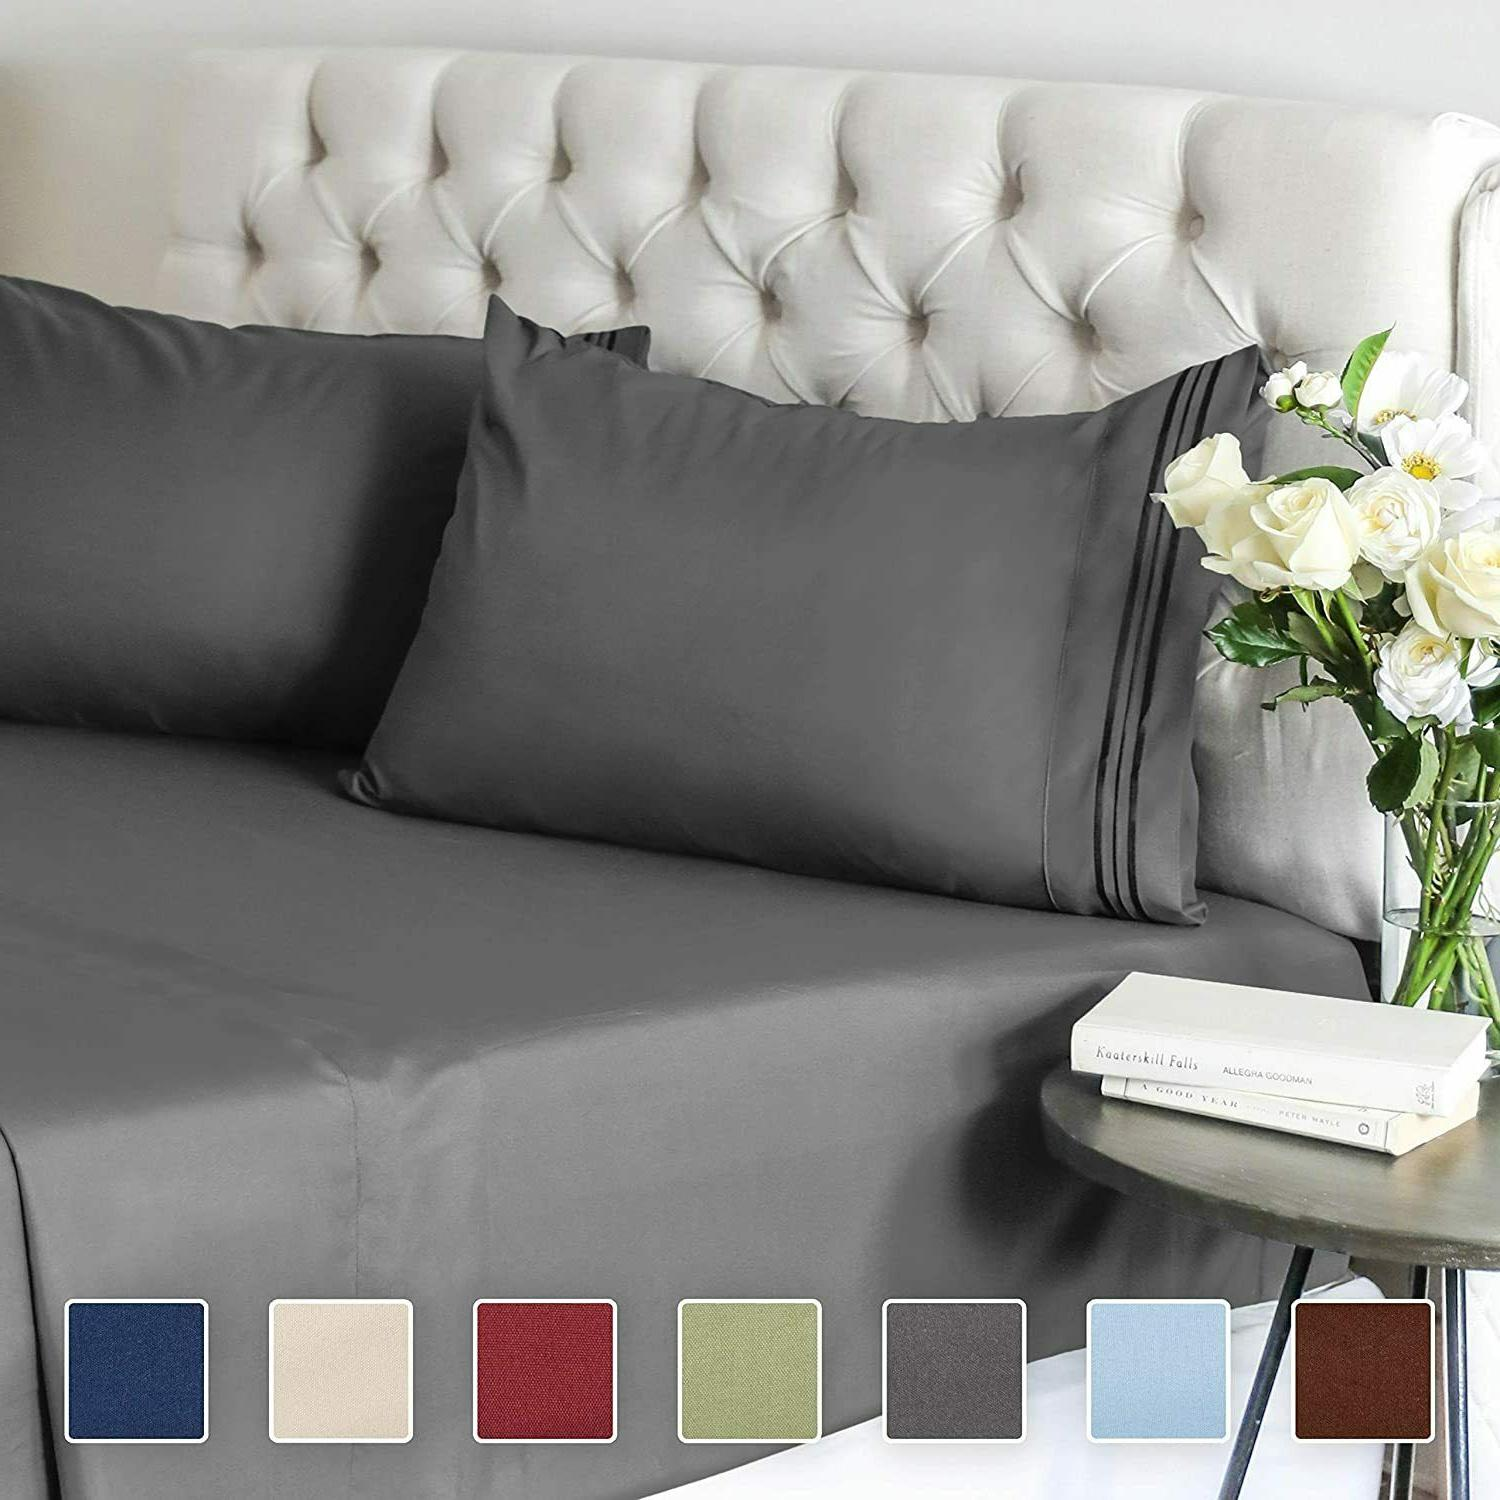 Twin Size Sheet Set - 3 Piece - Hotel Luxury Bed Sheets, Ext